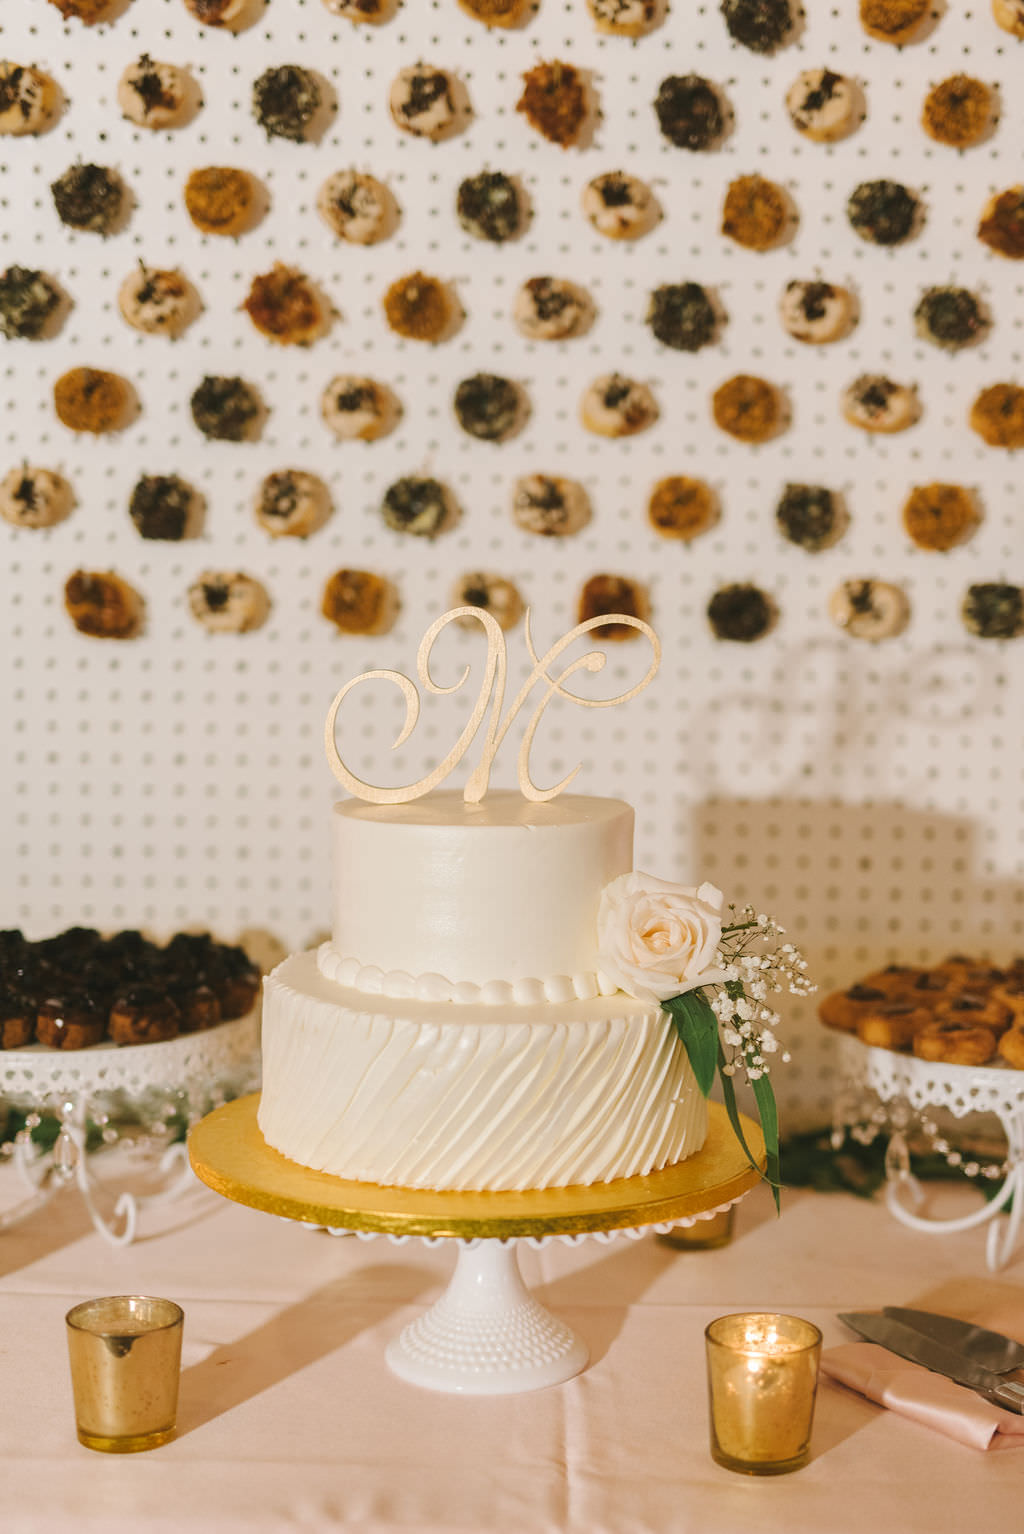 Classic Two Tier White Wedding Cake with Gold Monogram Cake Topper on White and Gold Cake Stand   Photographer Kera Photography   Wedding Planner Kelly Kennedy Weddings and Events